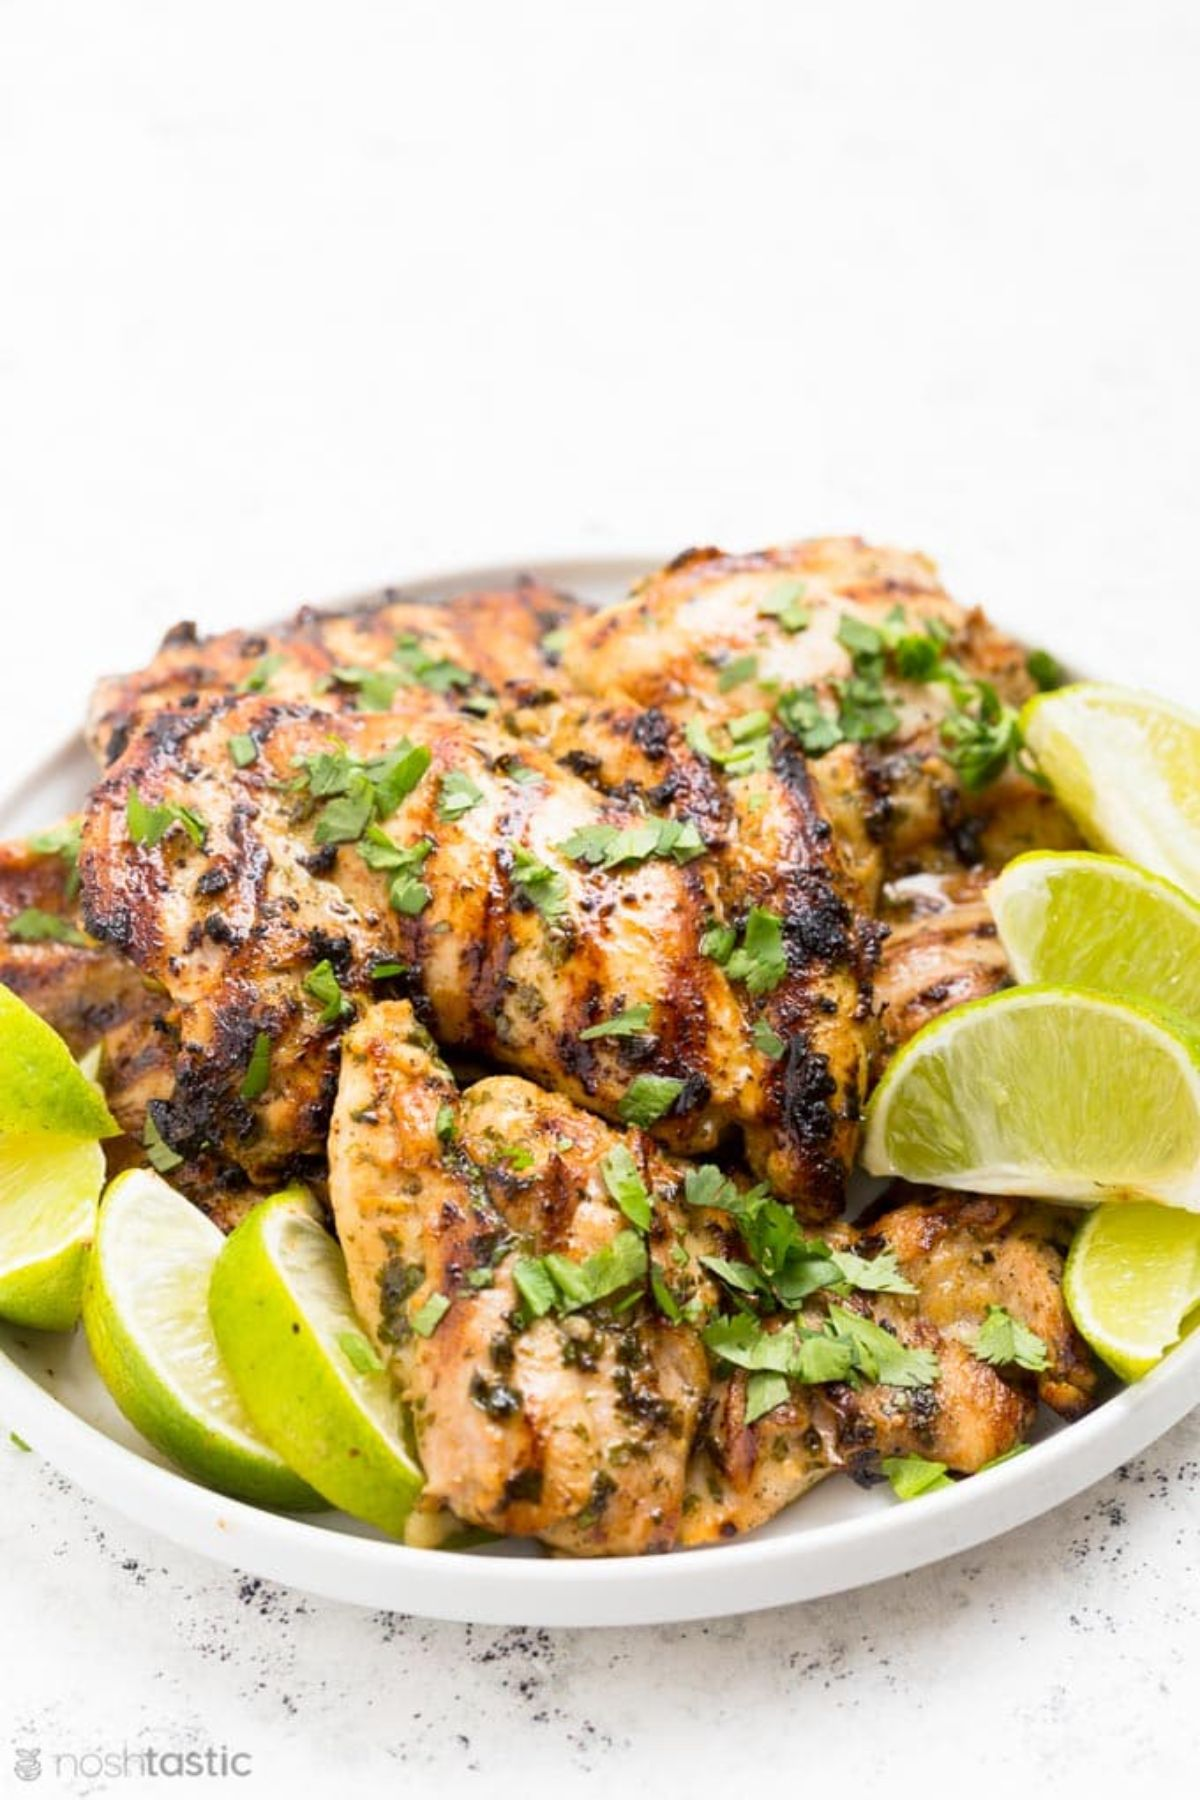 A plate of roasted chicken thighs garnished with chopped herbs and lime wedges